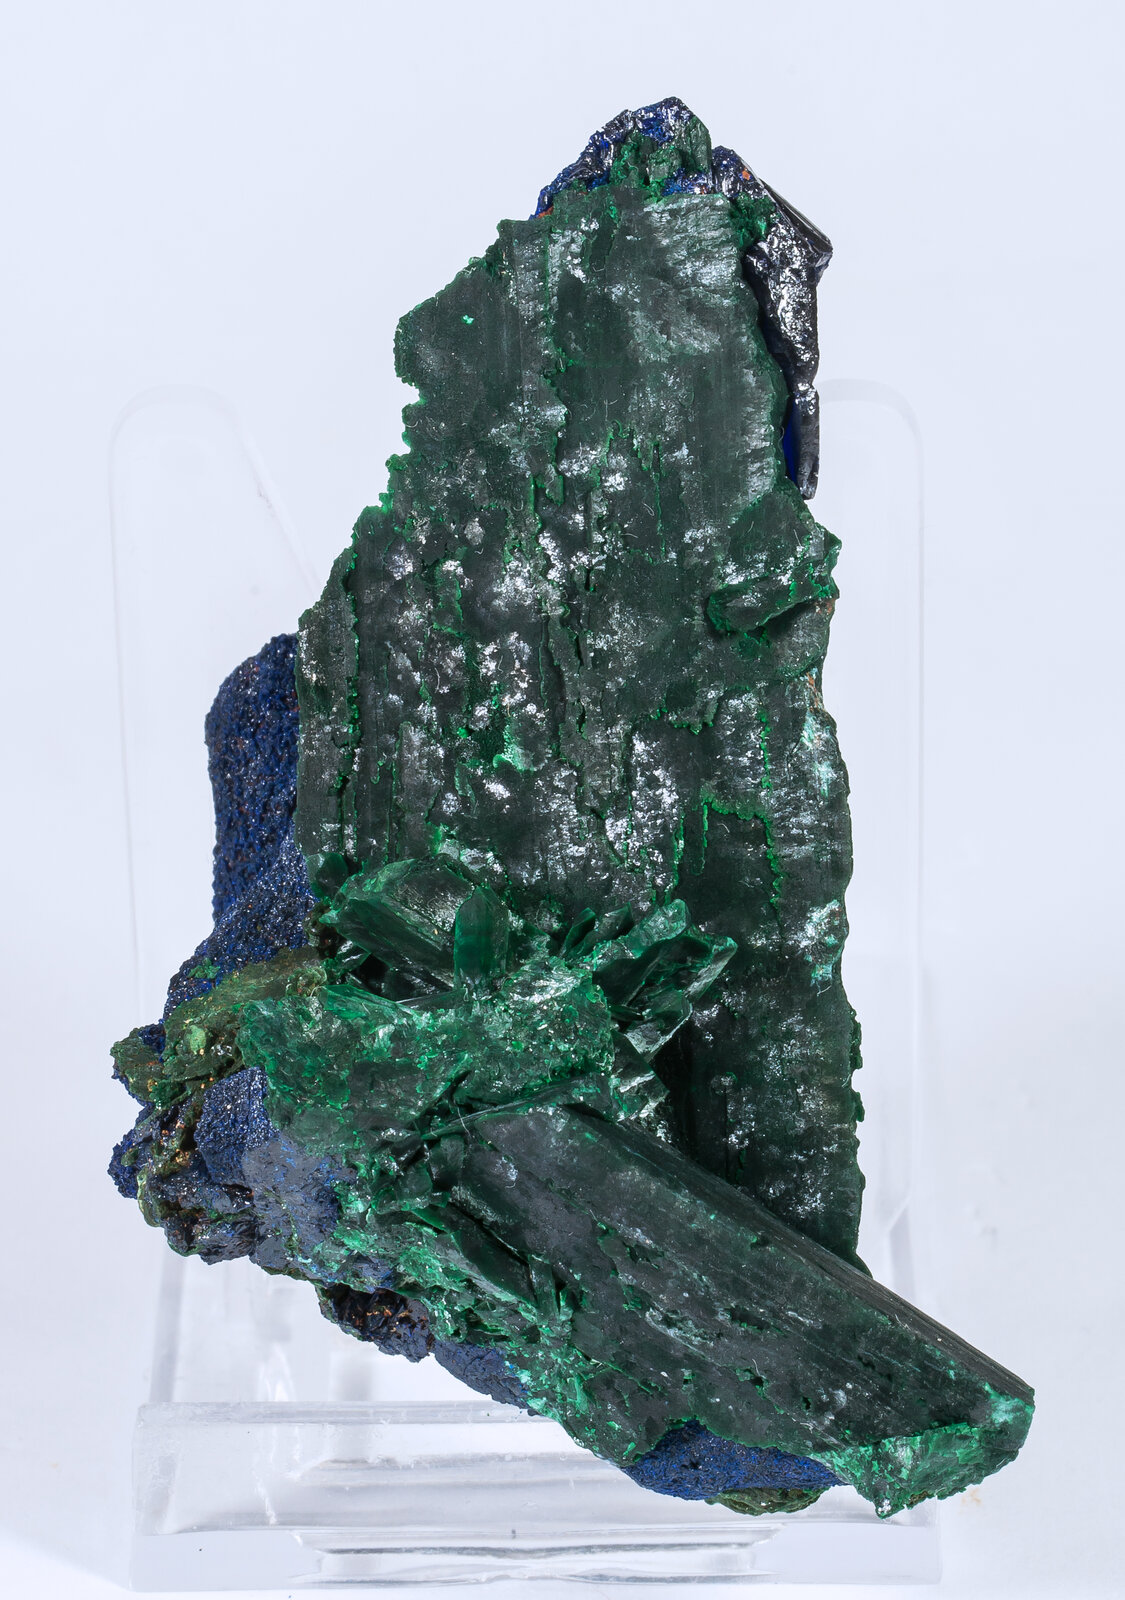 specimens/s_imagesAM8/Azurite-TT66AM8f.jpg